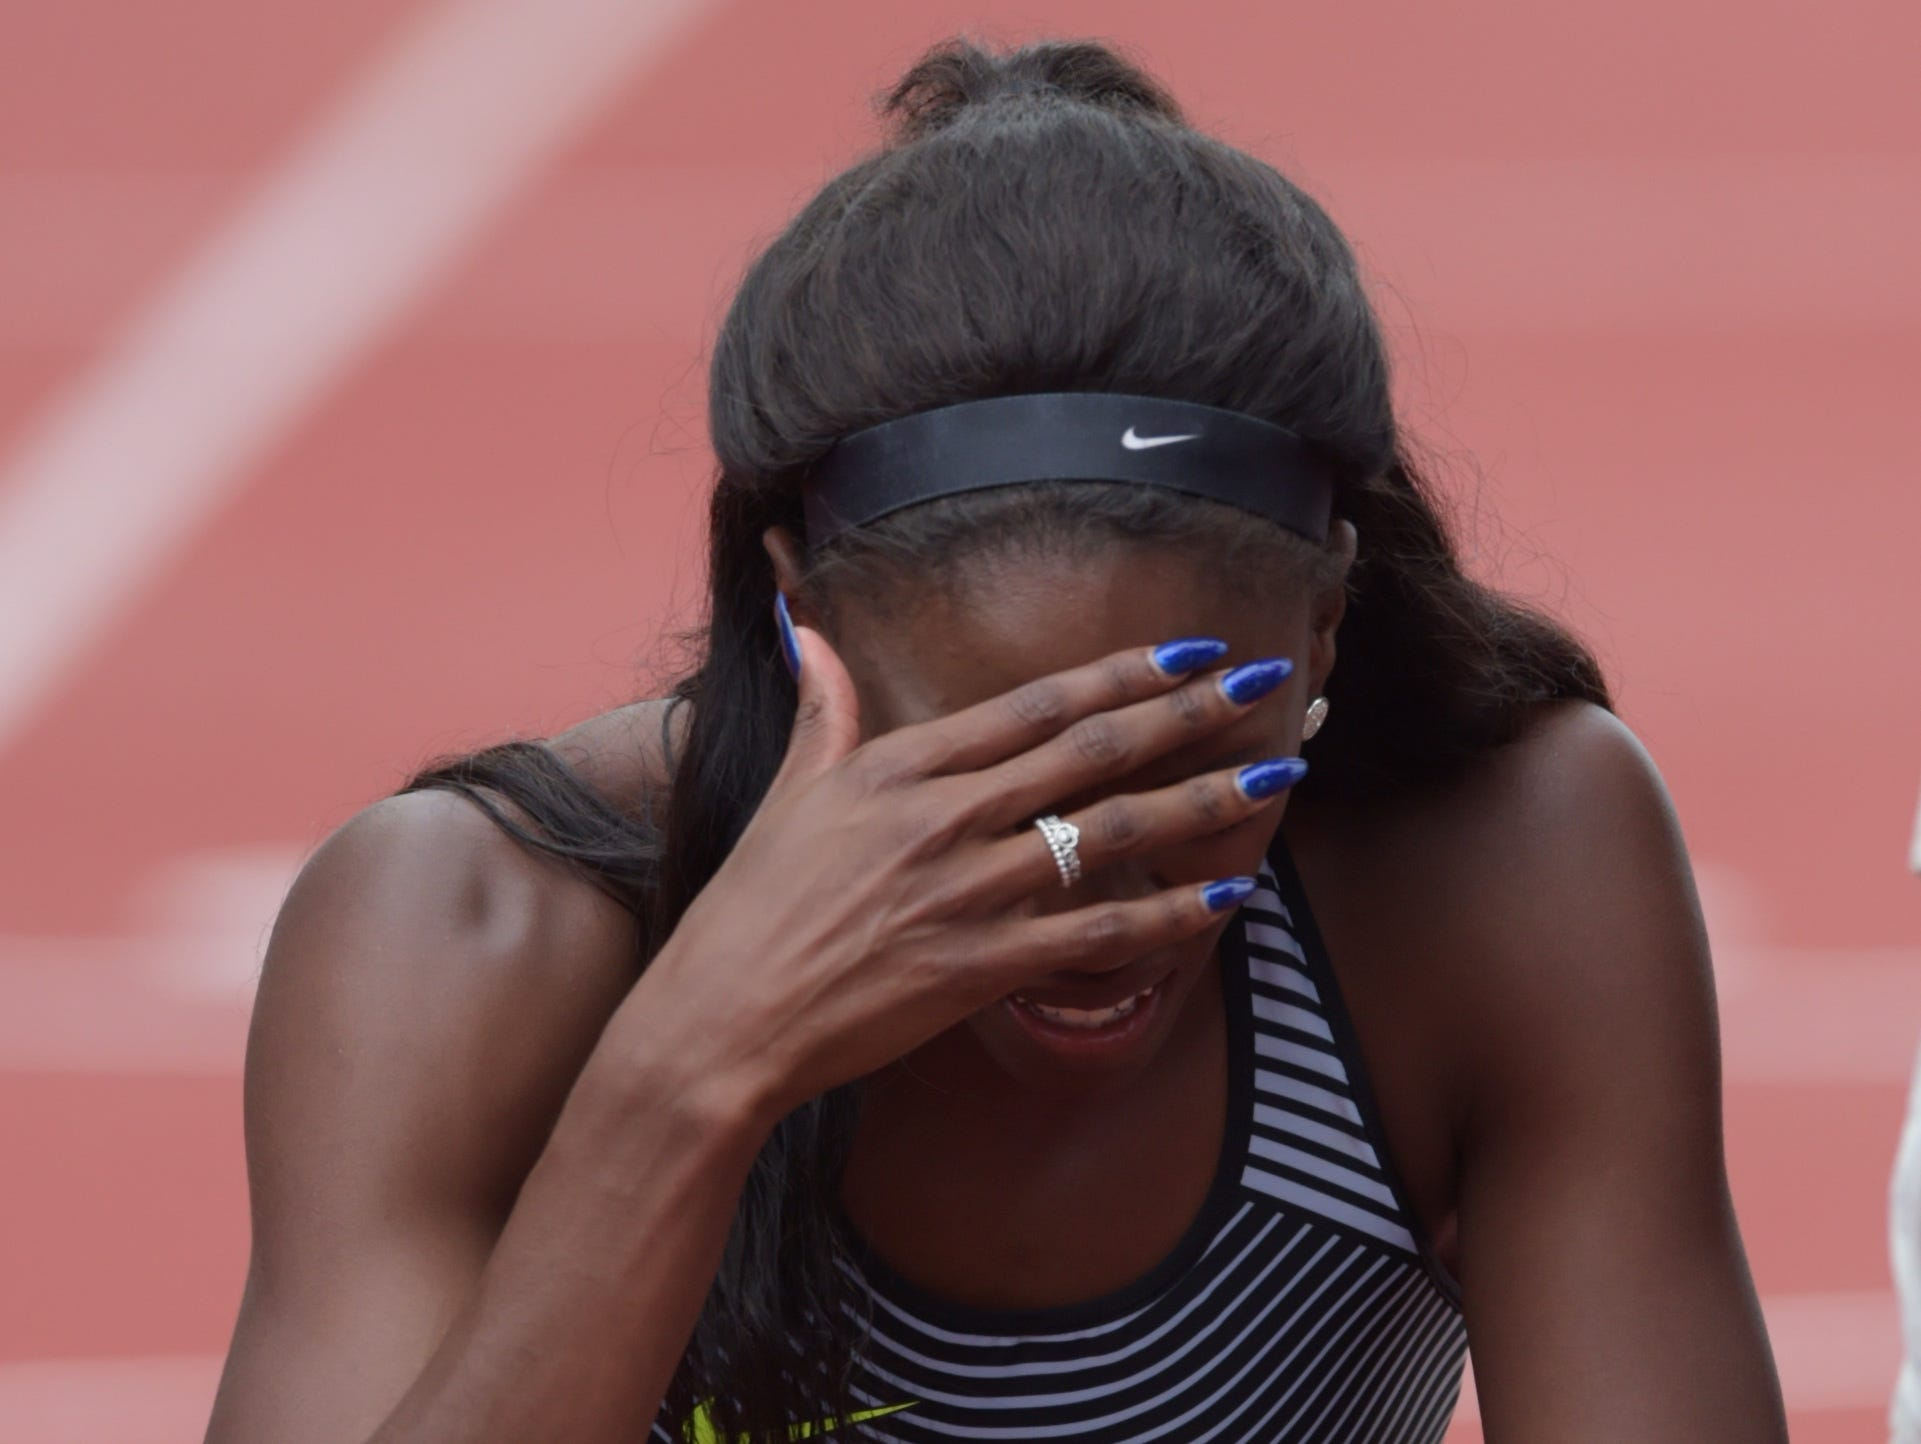 Ashley Spencer reacts after competing during the women's 400m hurdles finals in the 2016 U.S. Olympic track and field team trials at Hayward Field.